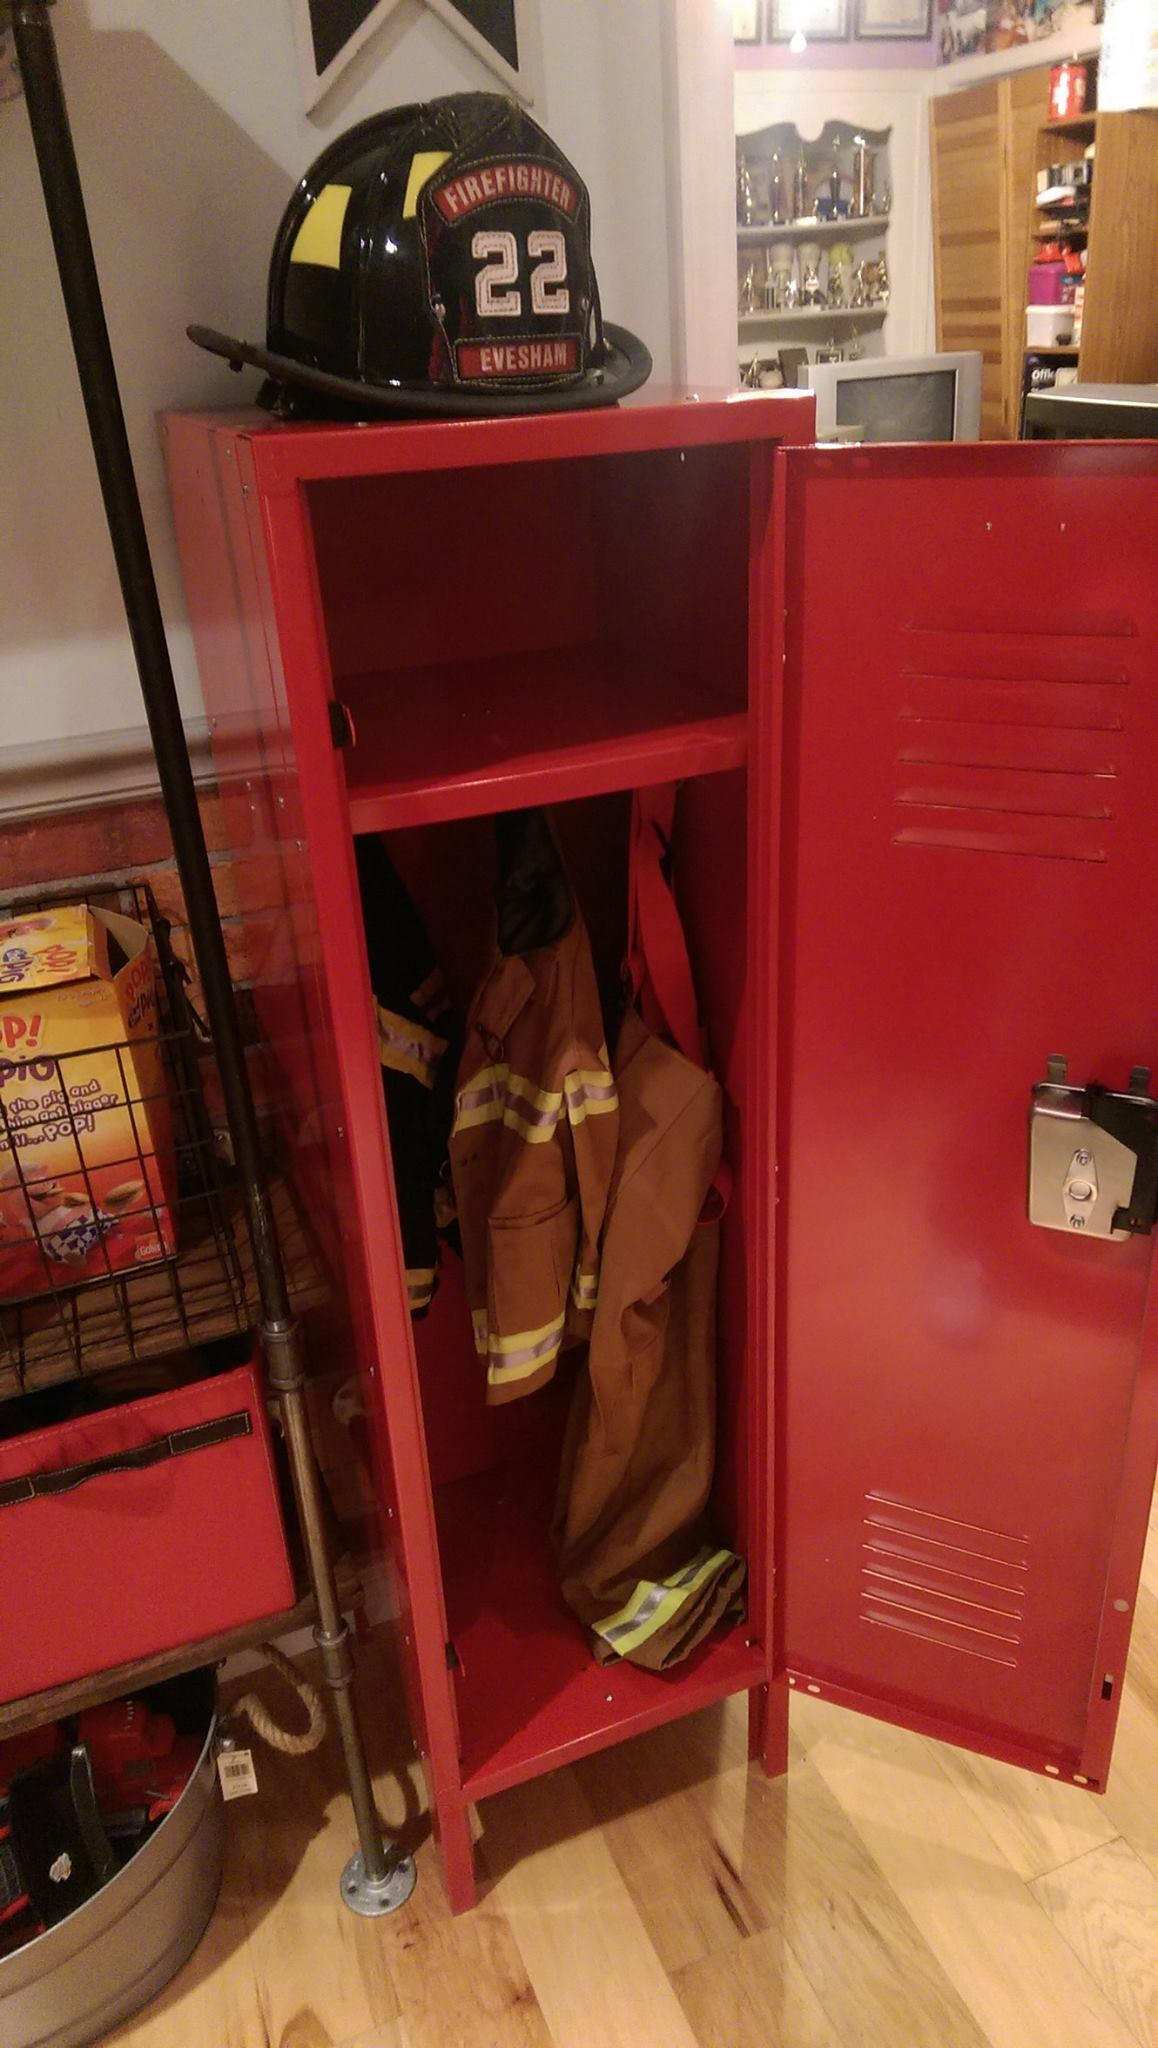 A locker for his turnout gear